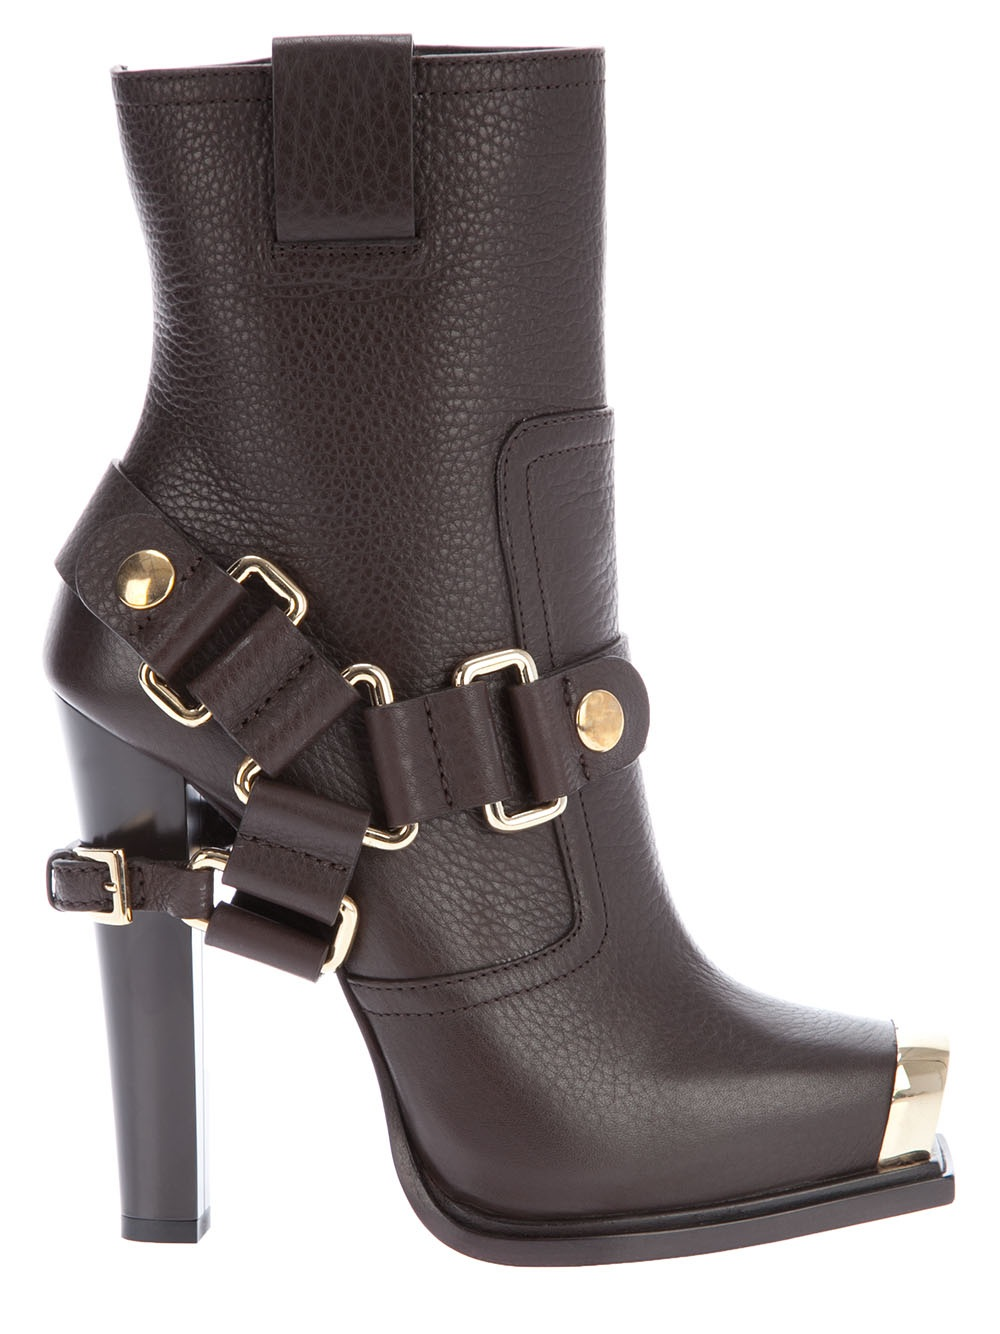 Gianmarco Lorenzi High Heel Boot In Brown Lyst